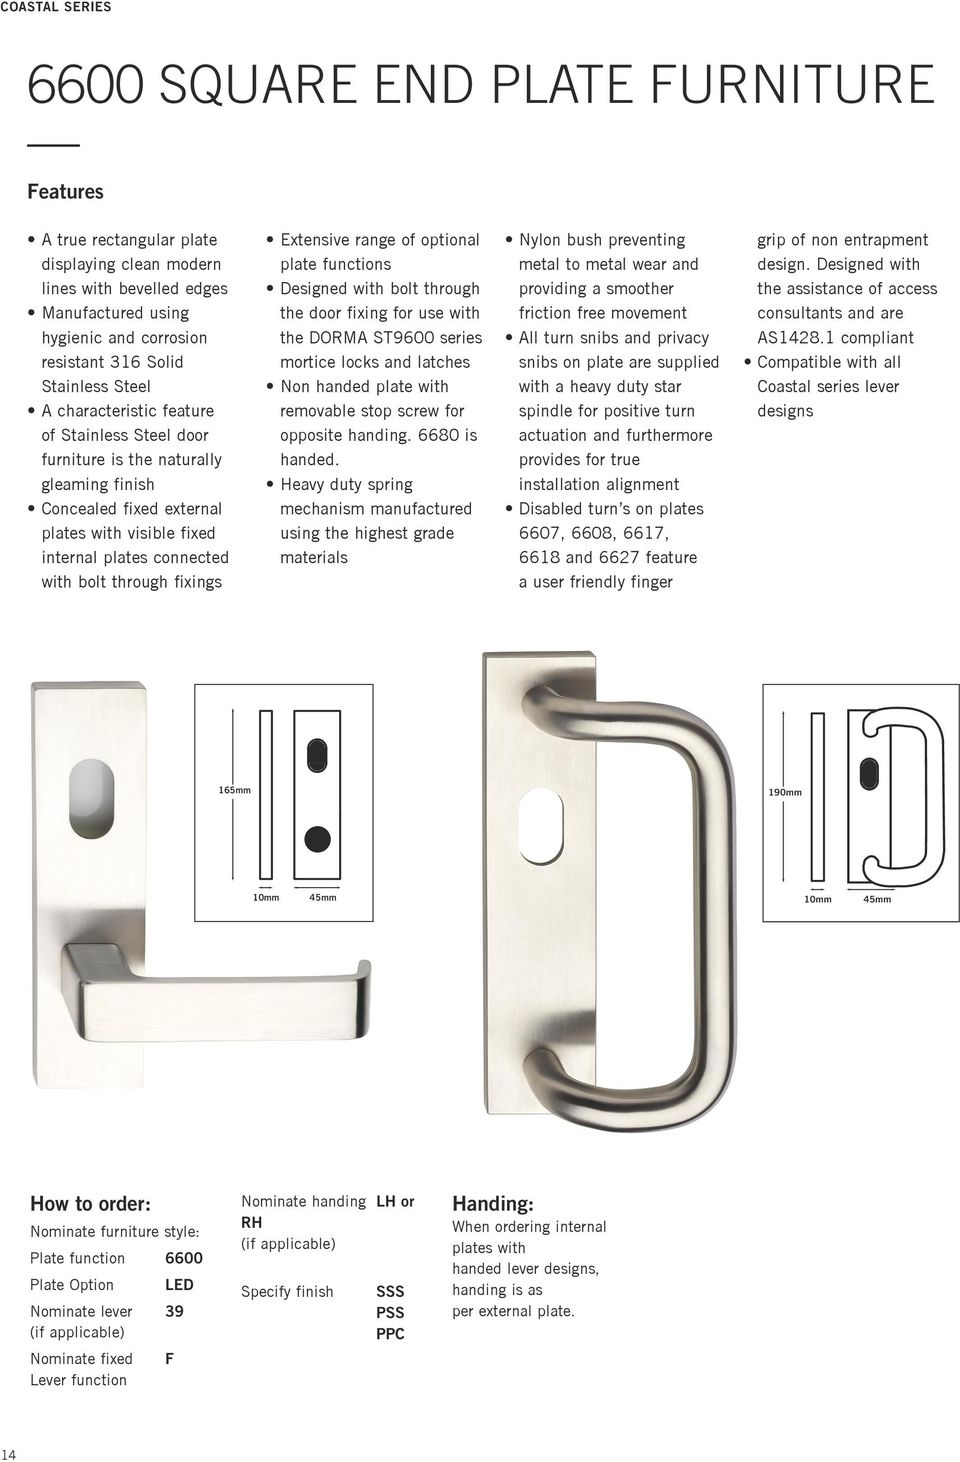 Extensive range of optional plate functions Designed with bolt through the door fixing for use with the DORMA ST9600 series mortice locks and latches Non handed plate with removable stop screw for